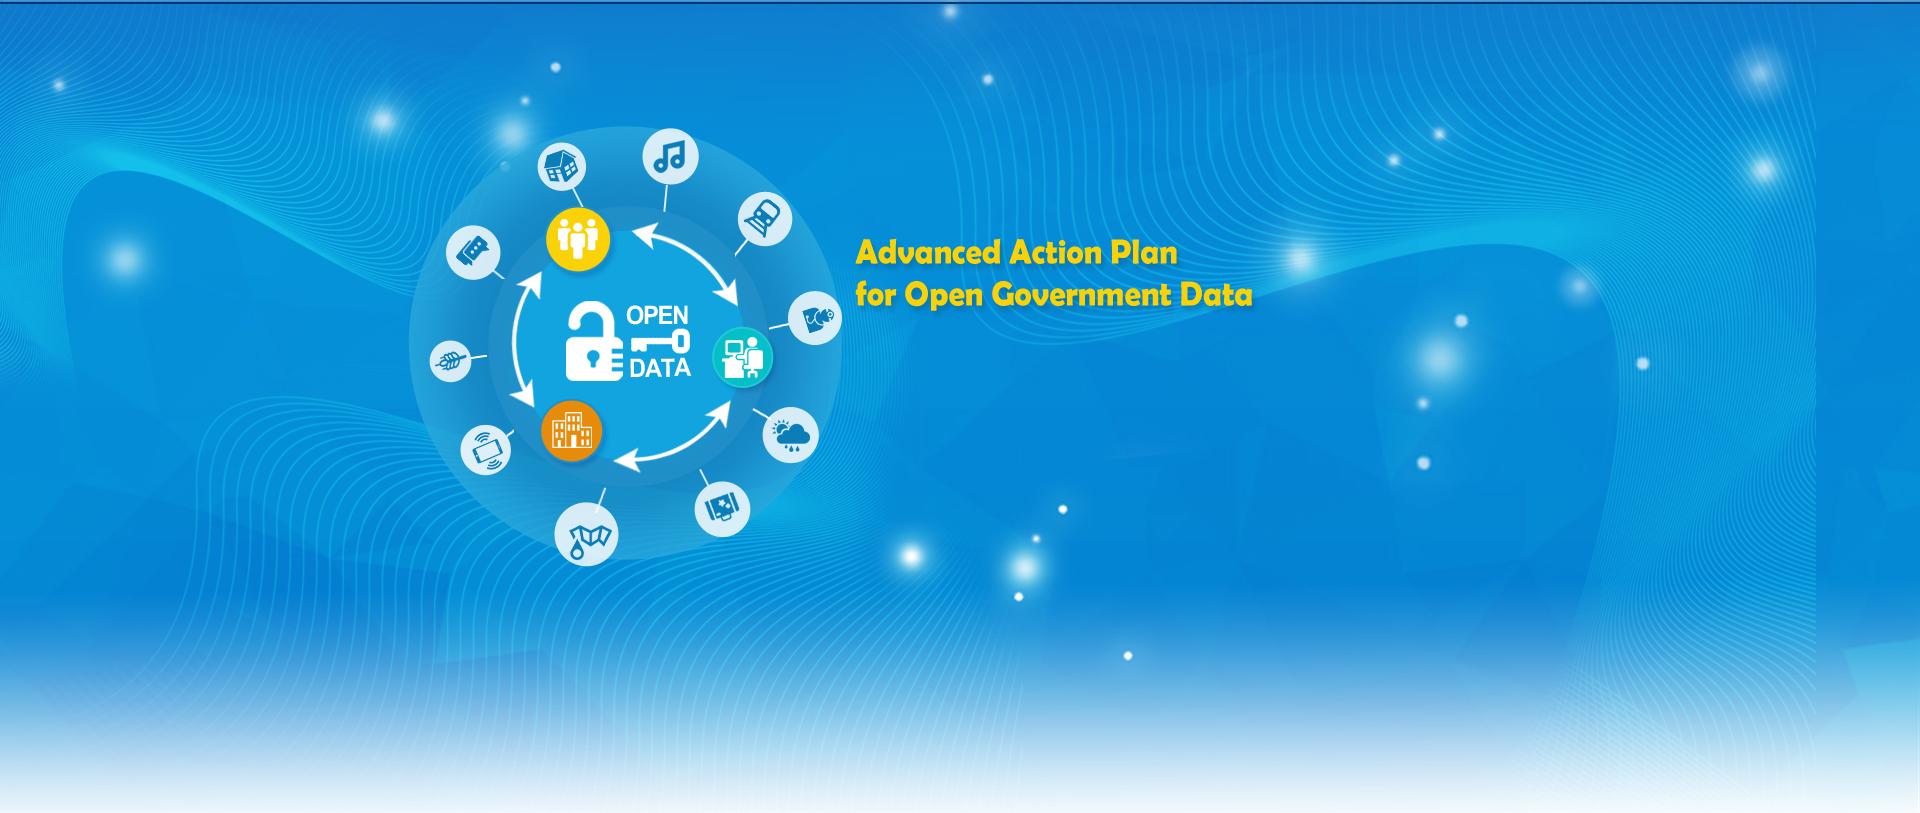 Advanced Action Plan for Open Government Data